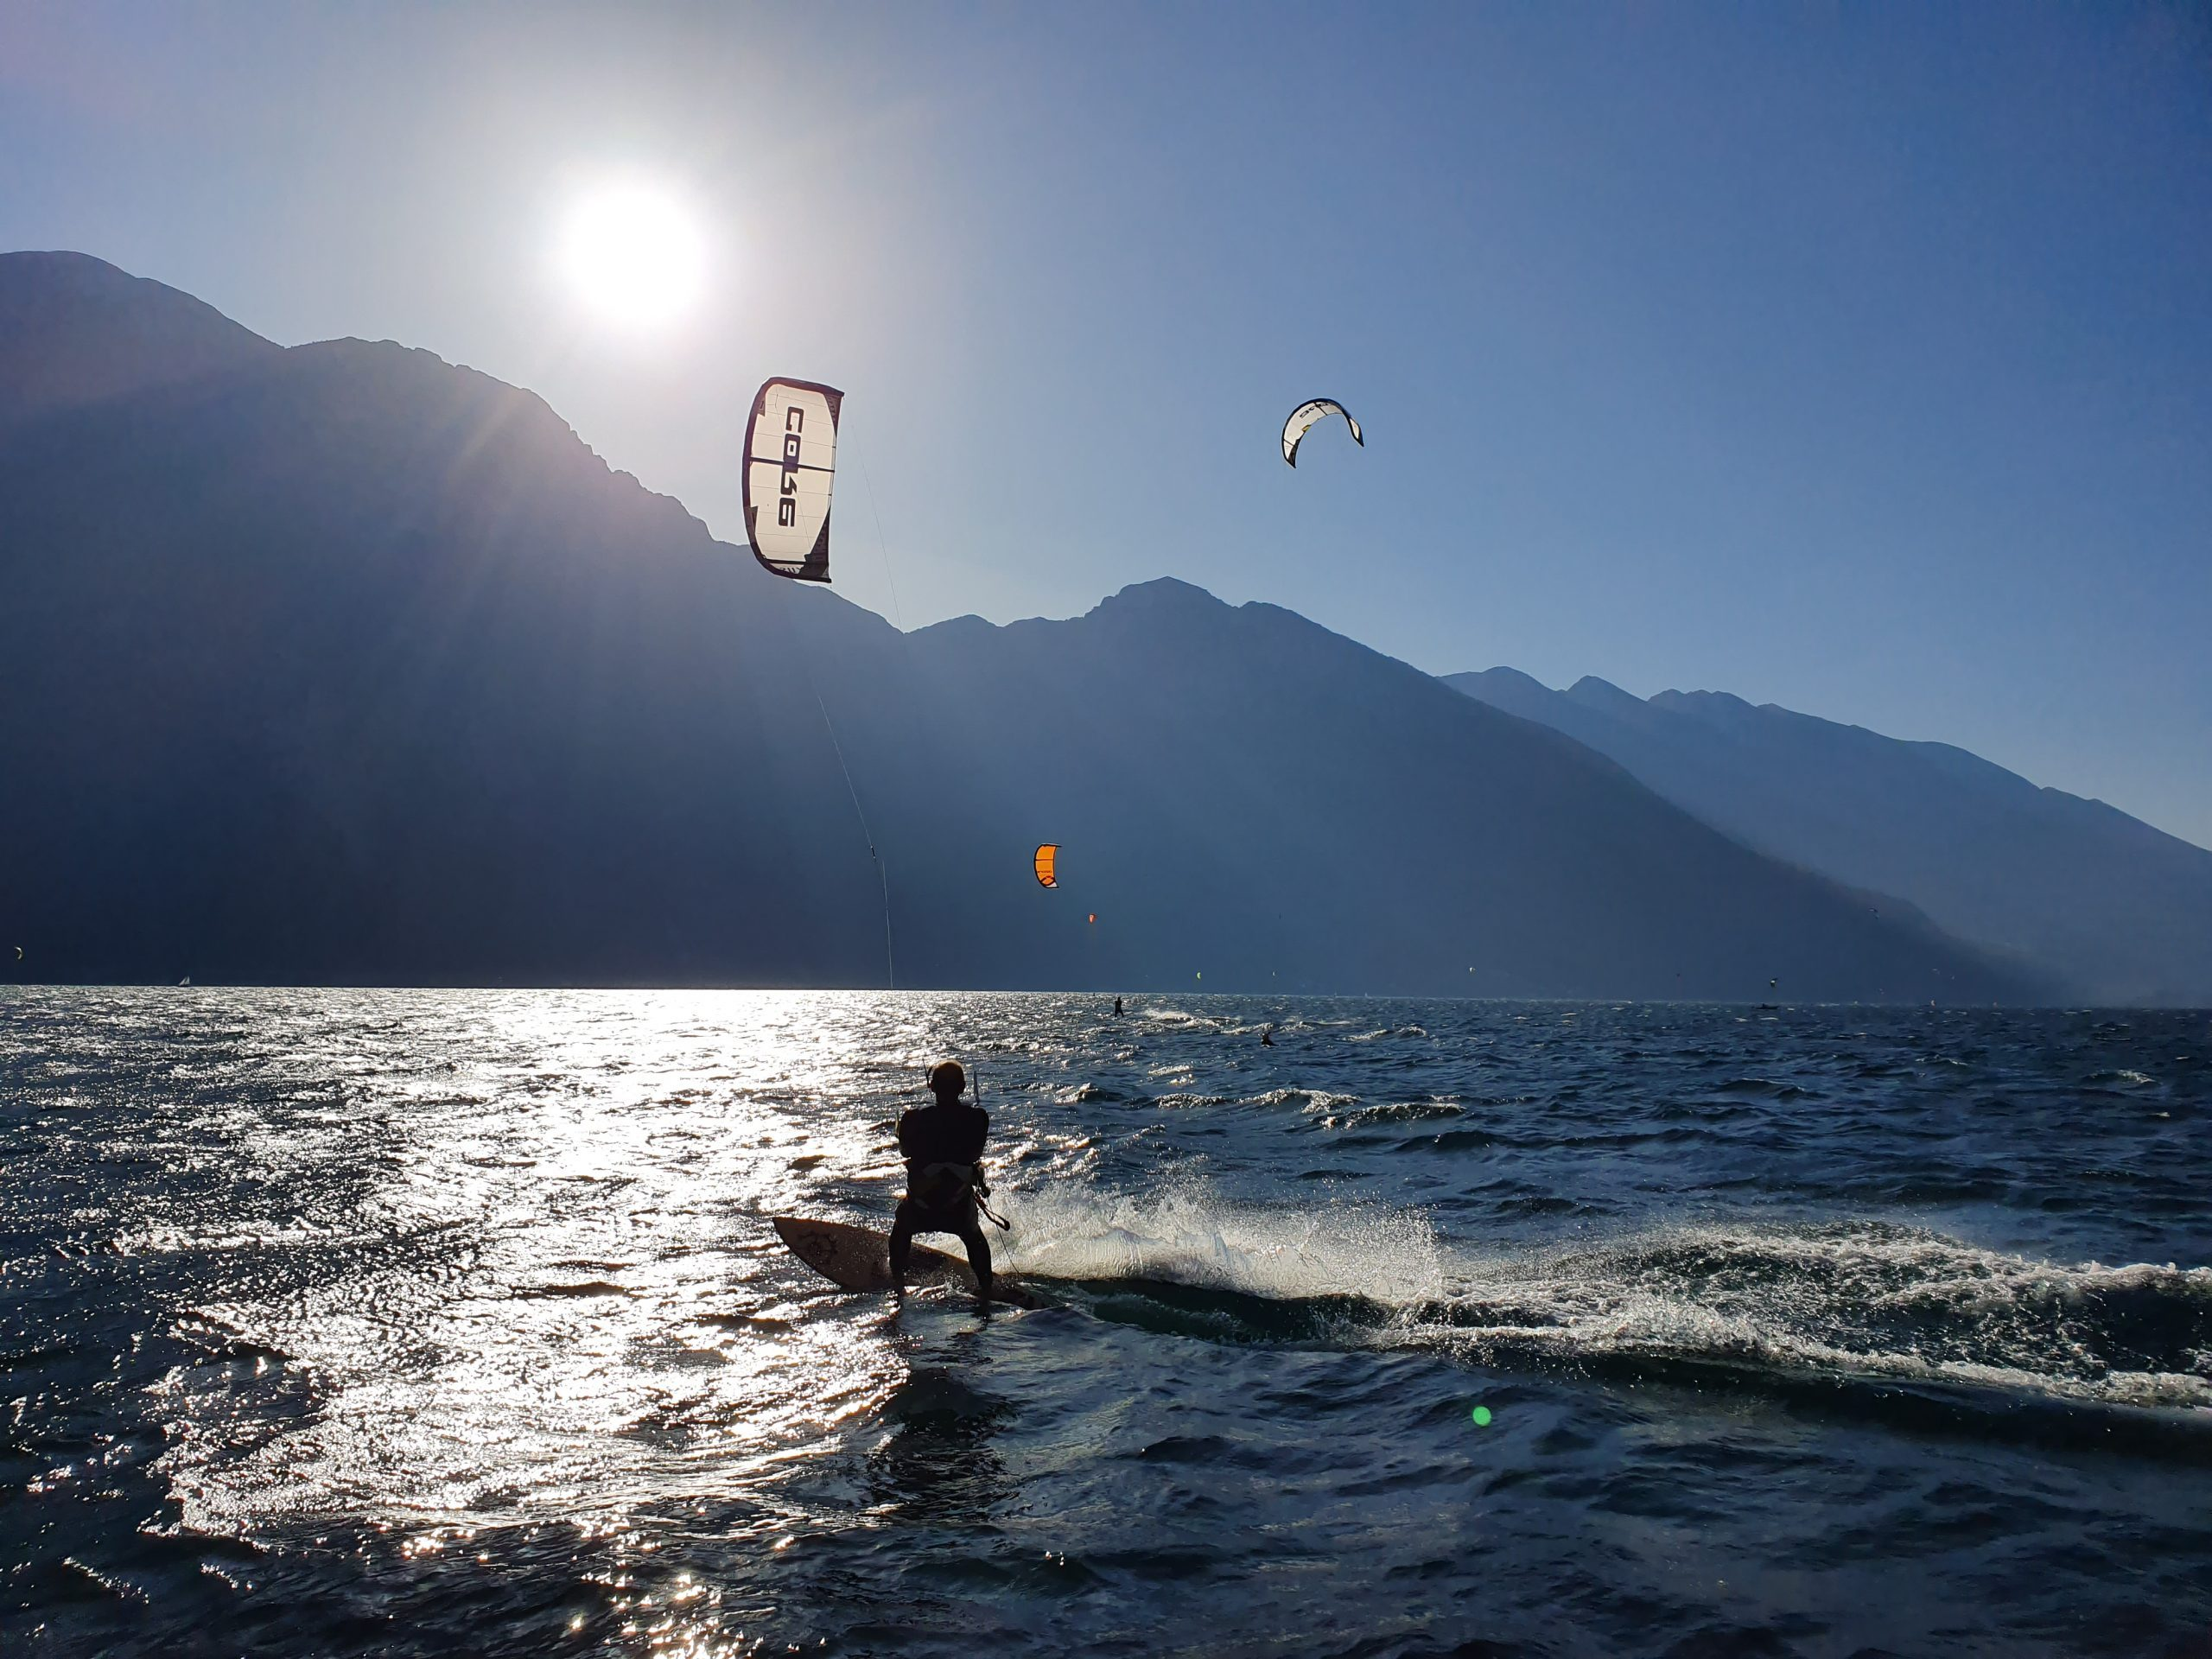 Kitesurf school Wind Riders on Lake Garda